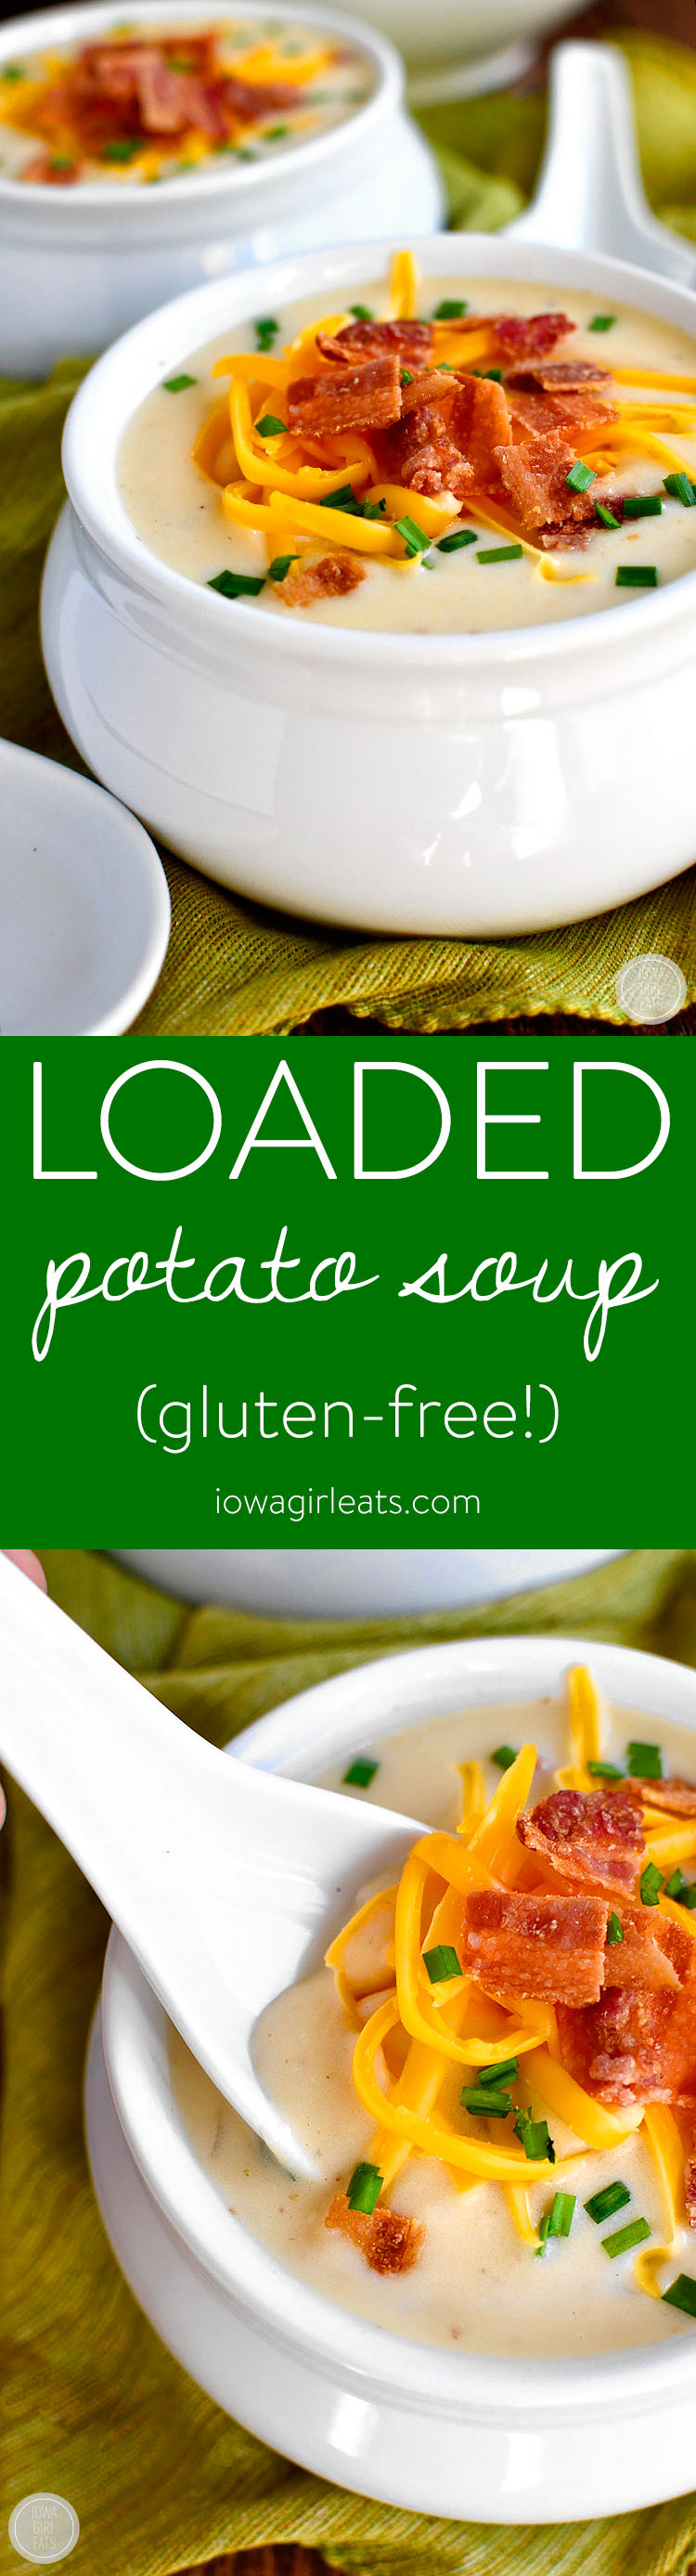 Loaded Potato Soup is thick, creamy, and gluten-free, plus it's loaded with delicious add-ins like bacon, sharp cheddar cheese, and chives!